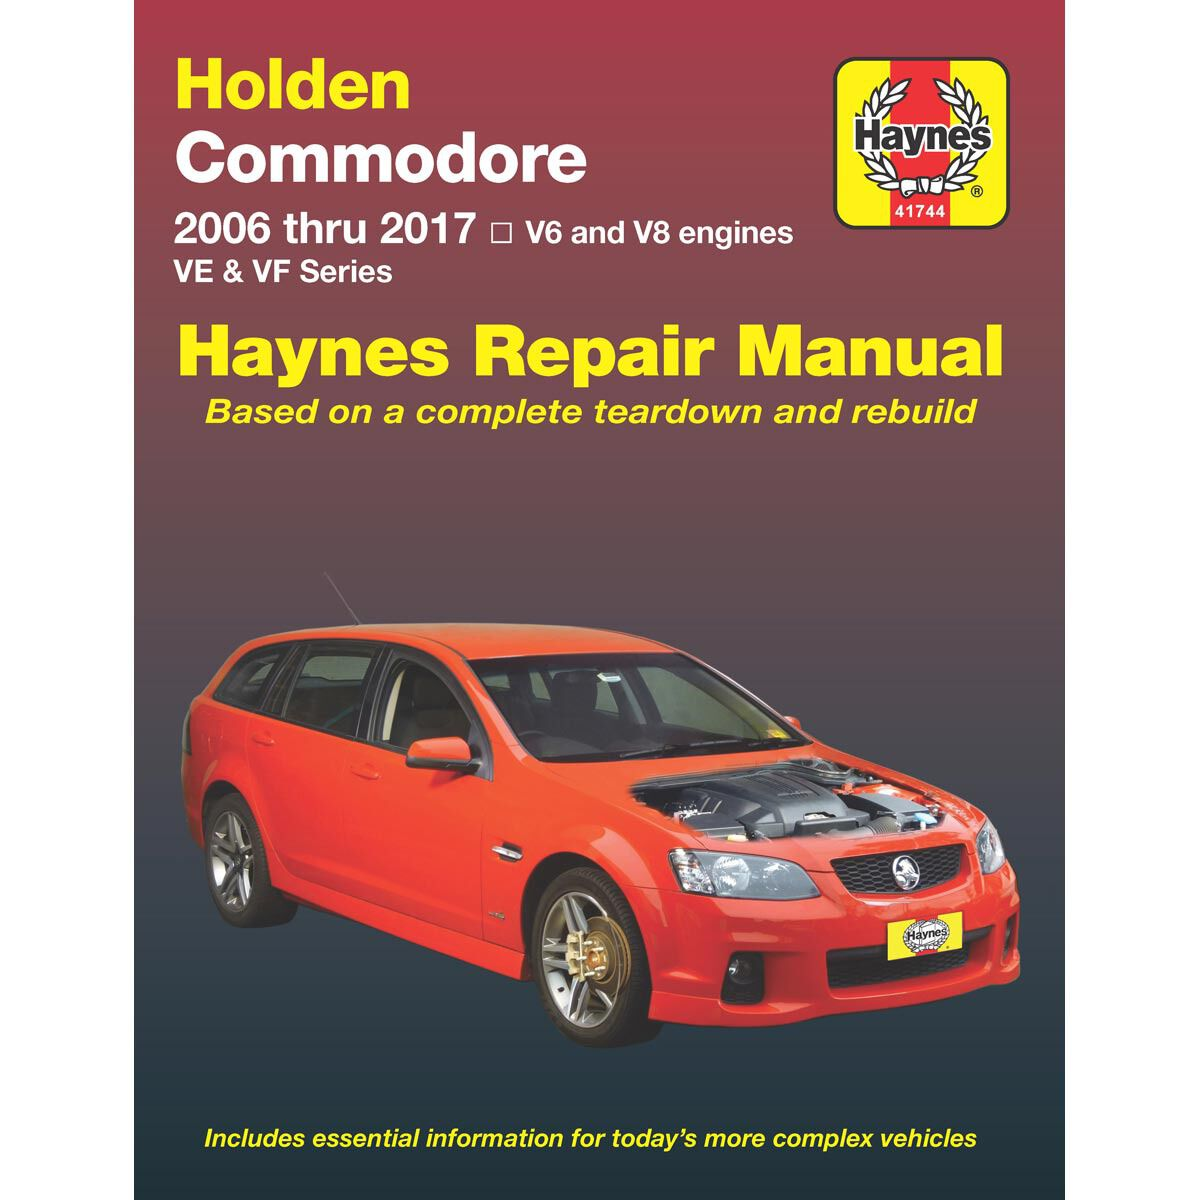 car manual for holden commodore ve vf supercheap auto rh supercheapauto com au Commodore VY V6 Commodore VE